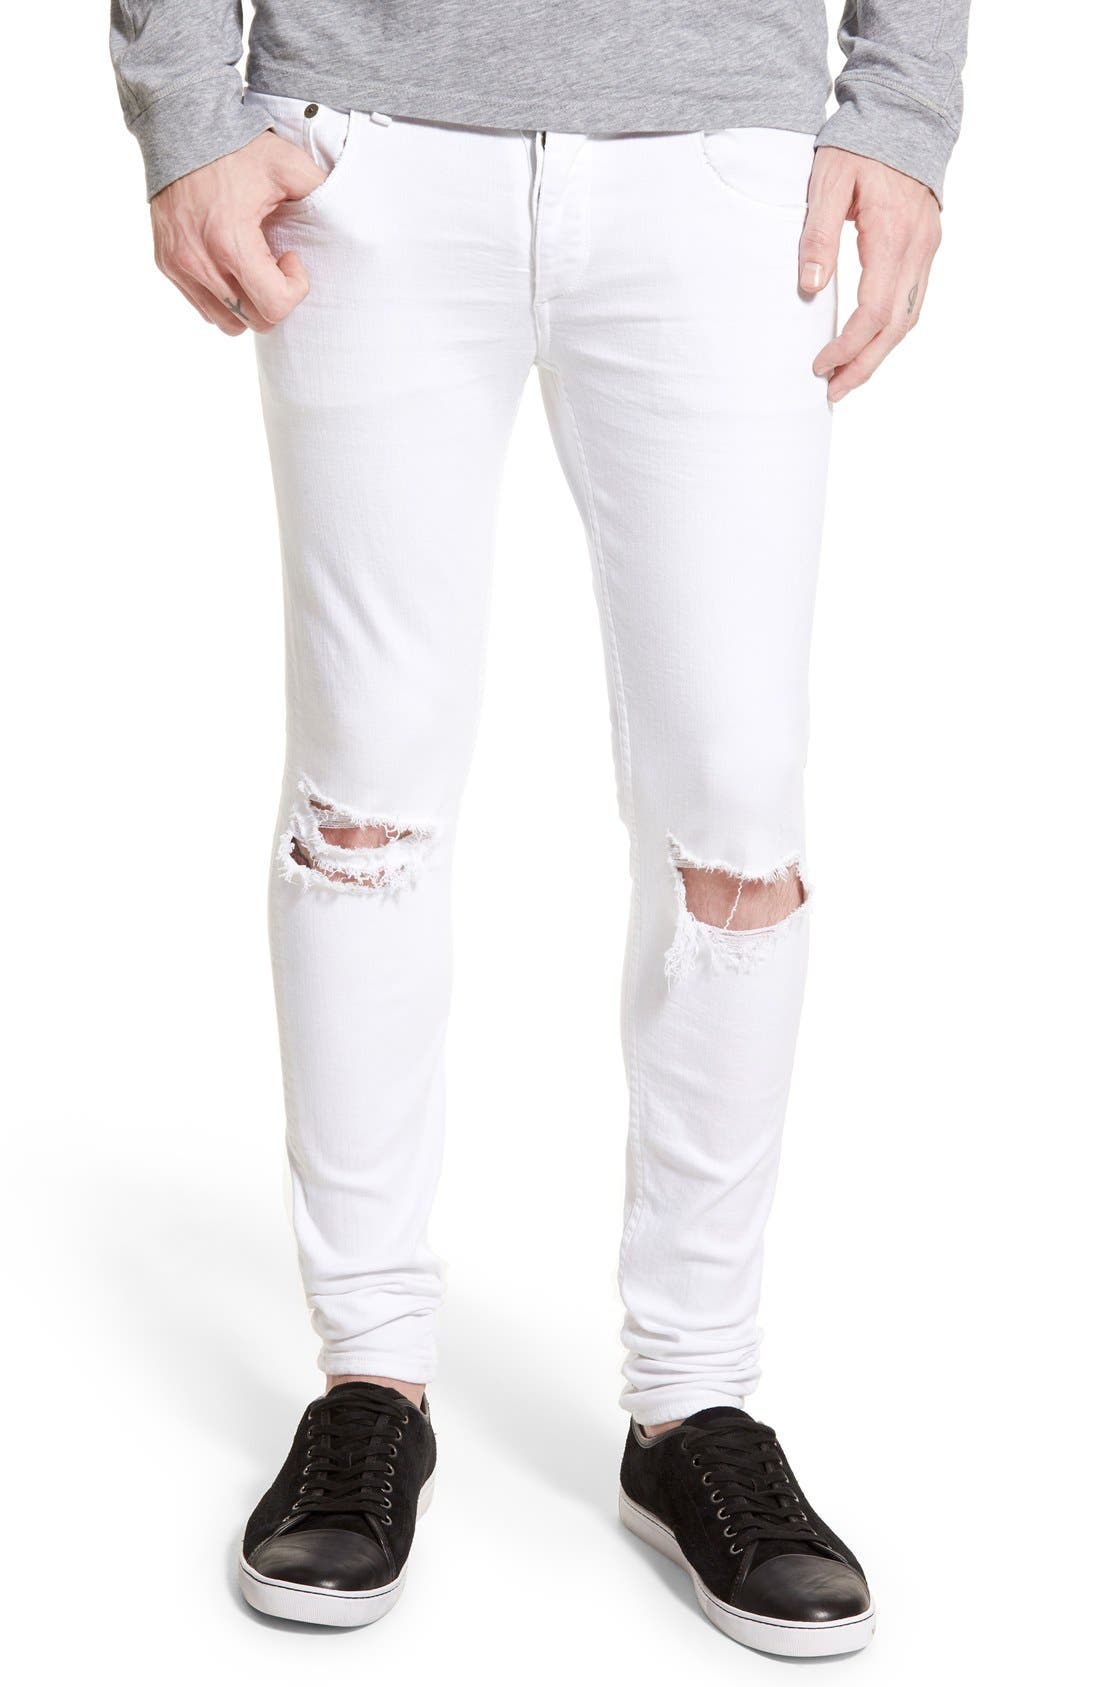 Alternate Image 1 Selected - rag & bone Standard Issue Fit 1 Skinny Fit Jeans (Aged White)